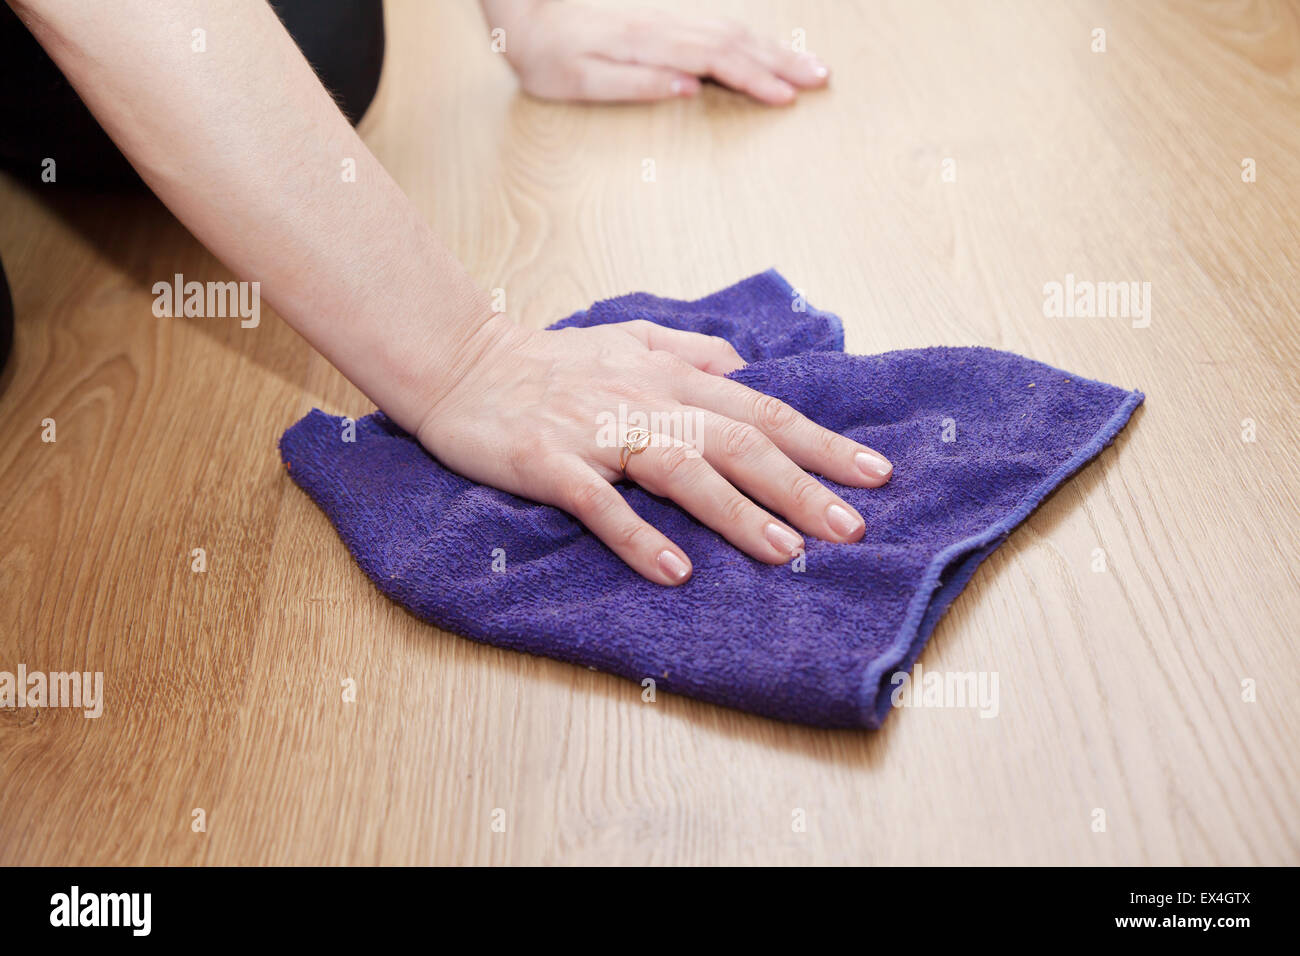 woman's hand cleaning the wooden floor with a blue cloth closeup - Stock Image